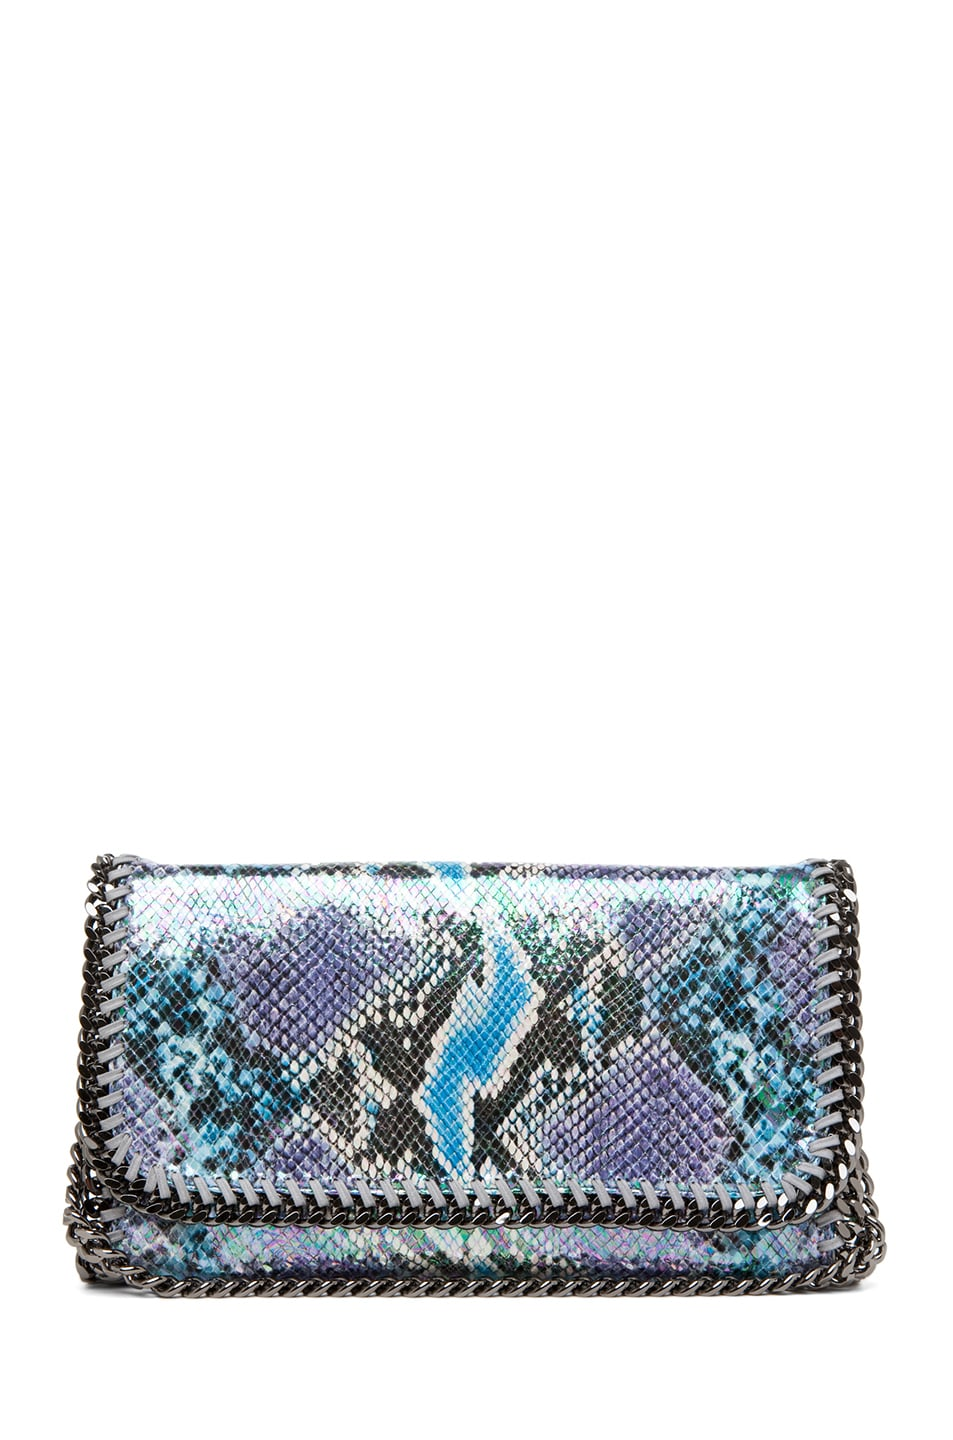 Image 1 of Stella McCartney Falabella Oleografic Python Clutch in Navy